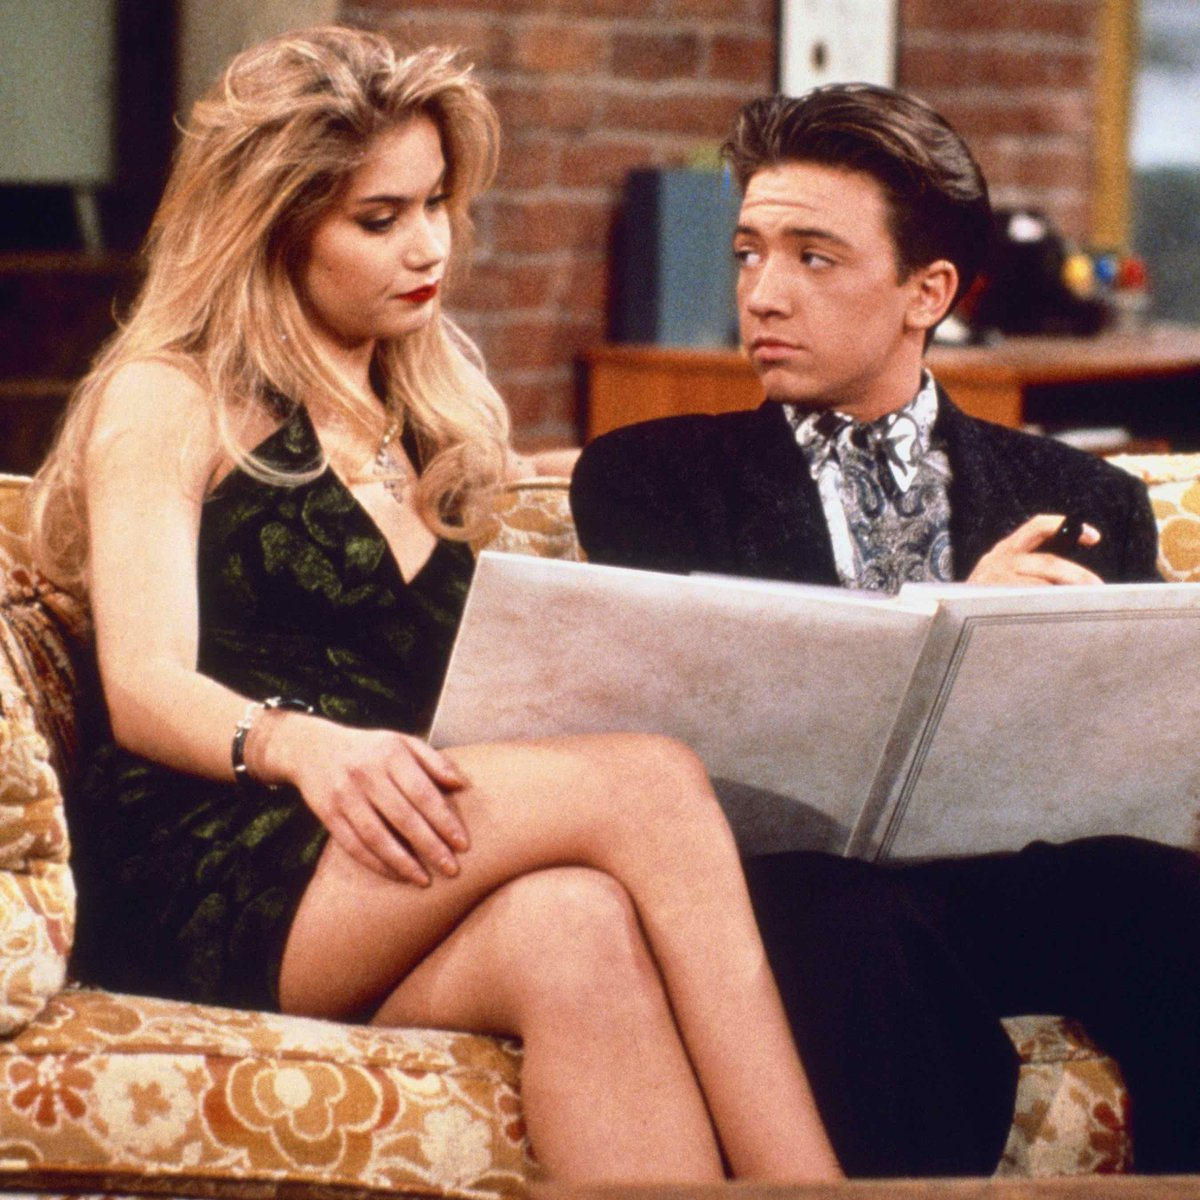 Married With Children Christmas.Gettv On Twitter Bud And Kelly Try To Surprise Their